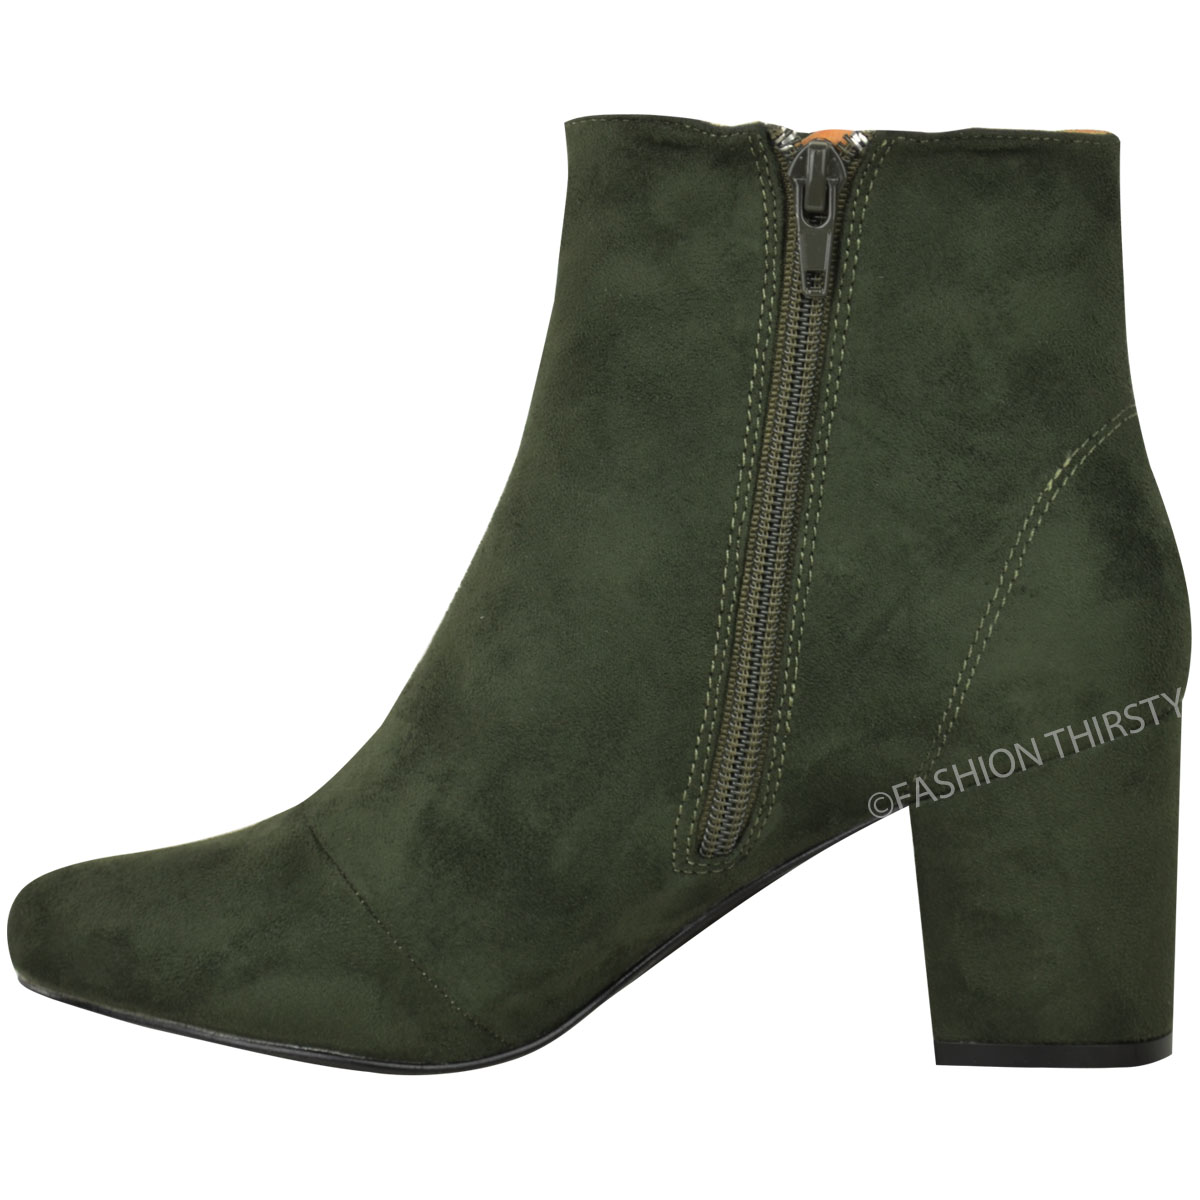 thumbnail 15 - WOMENS-LADIES-LOW-BLOCK-HEEL-CHELSEA-ANKLE-BOOTS-CUT-OUT-LACE-UP-SHOES-NEW-SIZE